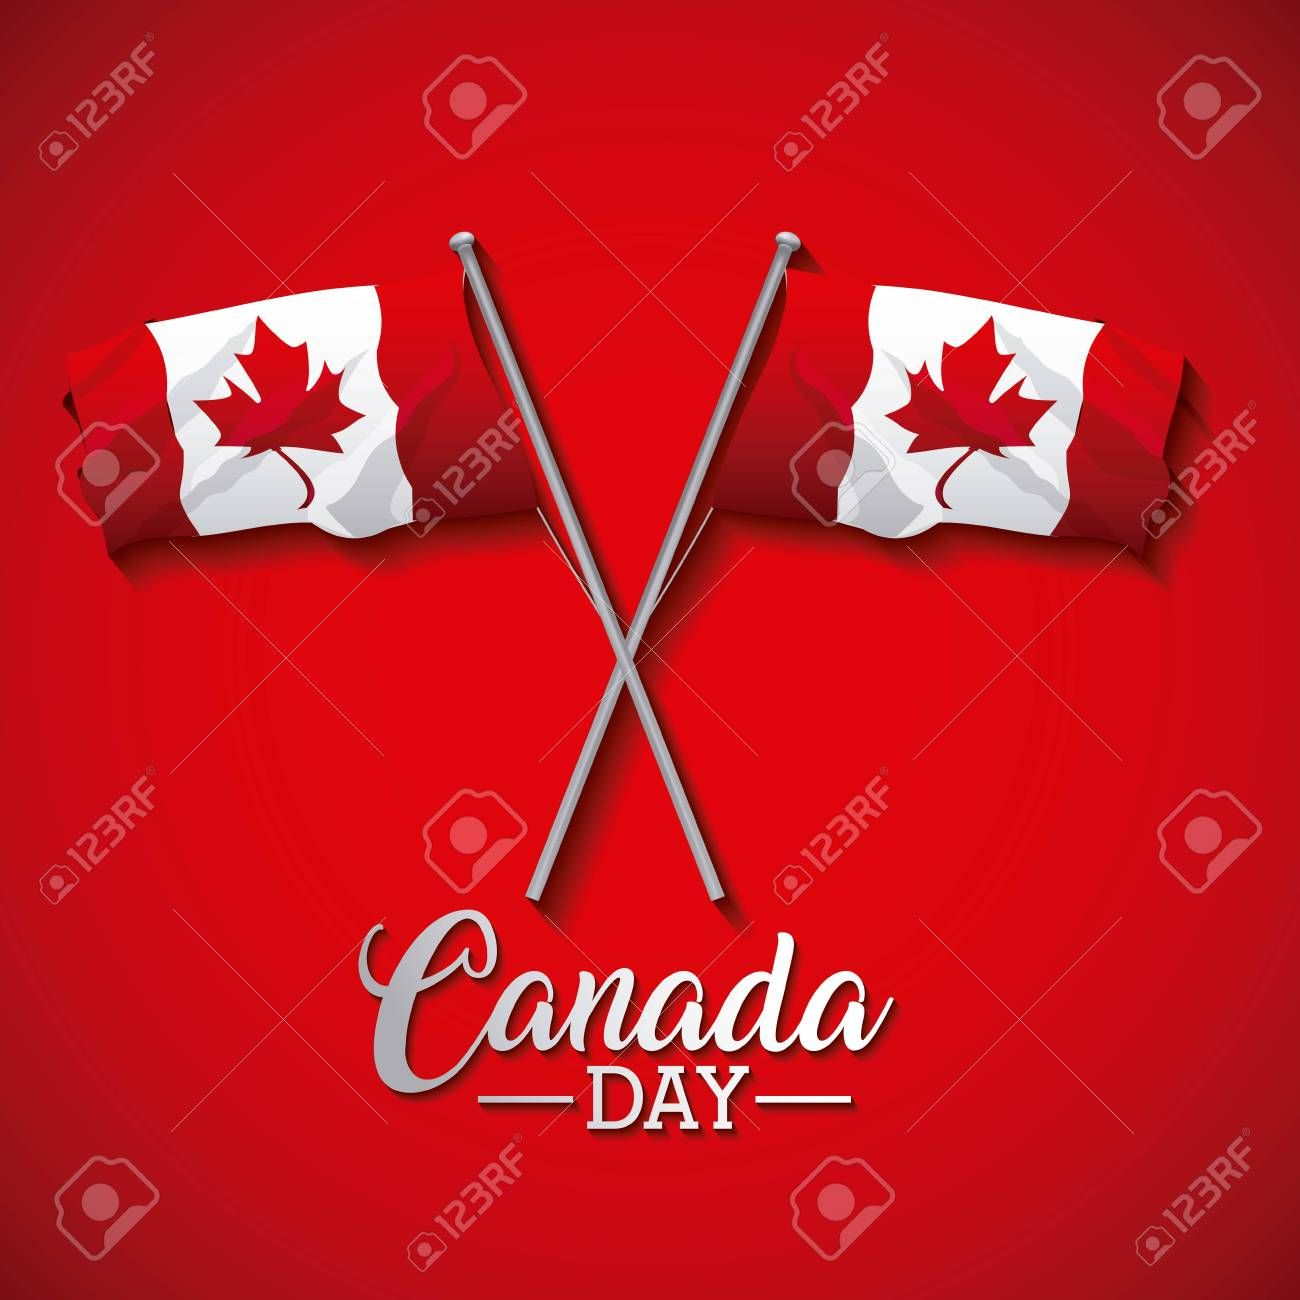 Pin By Ron Enid Willoughby On July 1 Canada Day Canada Day Canada Canada Day Party